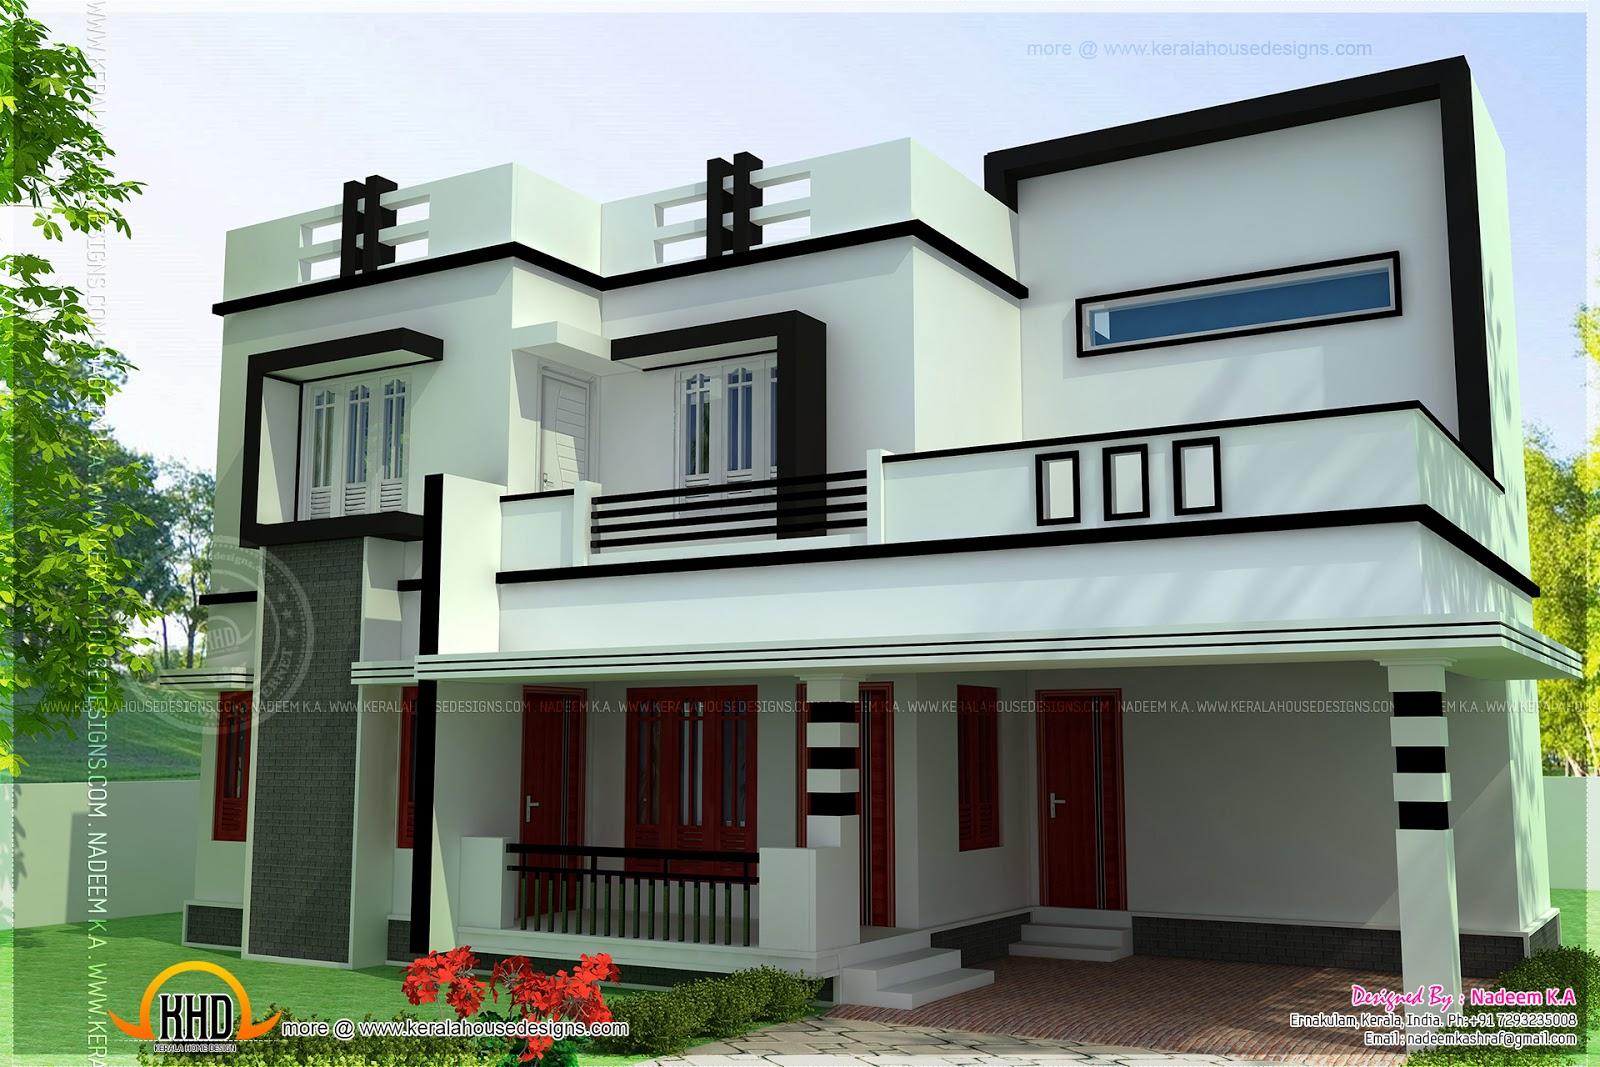 Flat roof 4 bedroom modern house kerala home design and floor plans 4 bedroom modern house plans